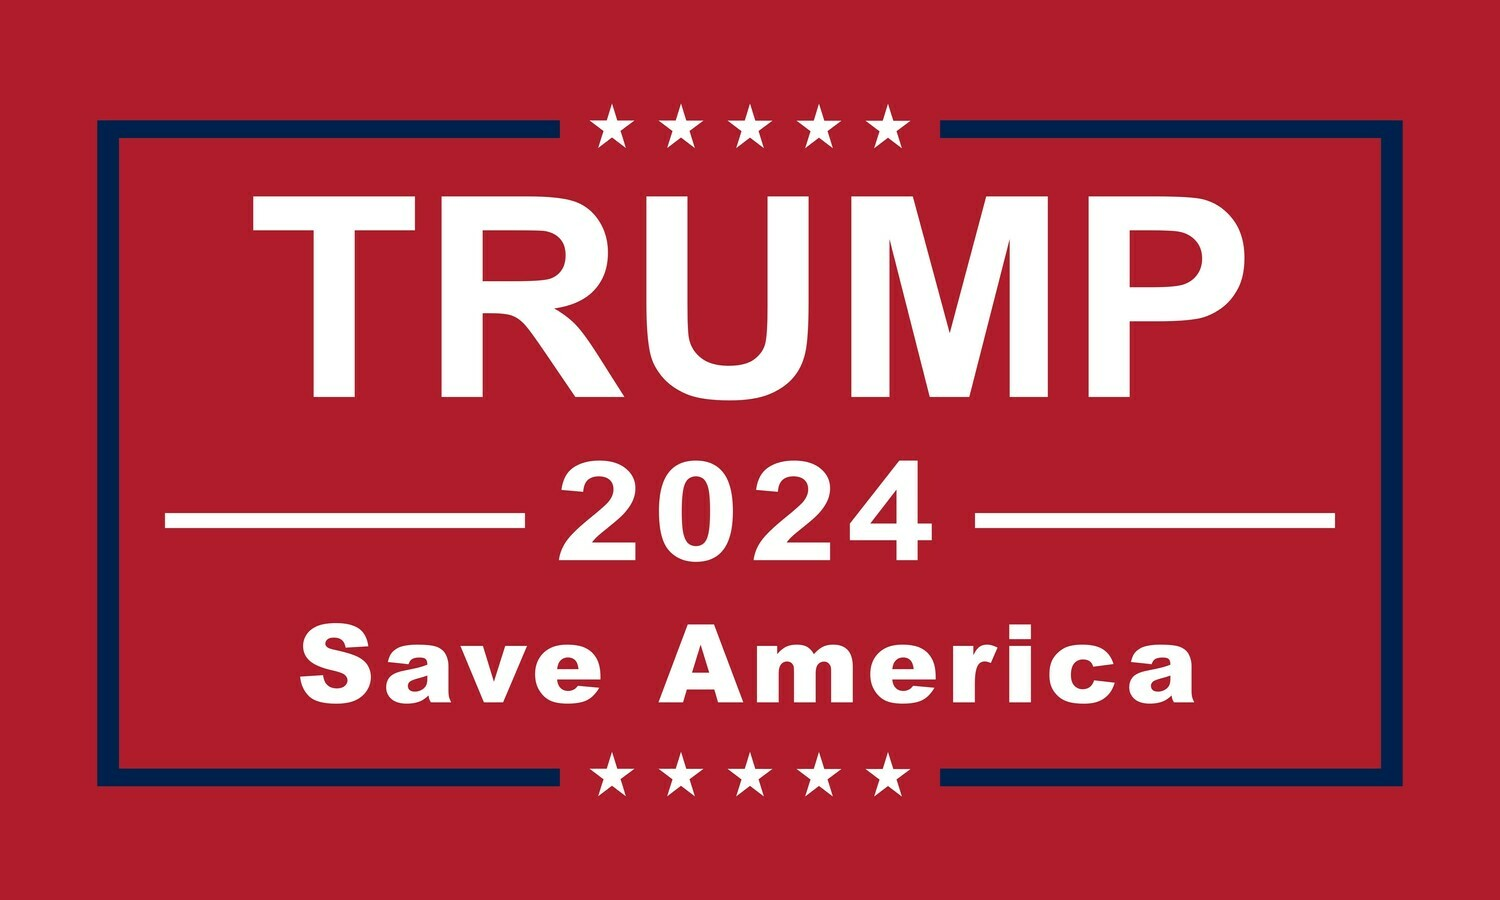 Trump 2024 - Save America Flag